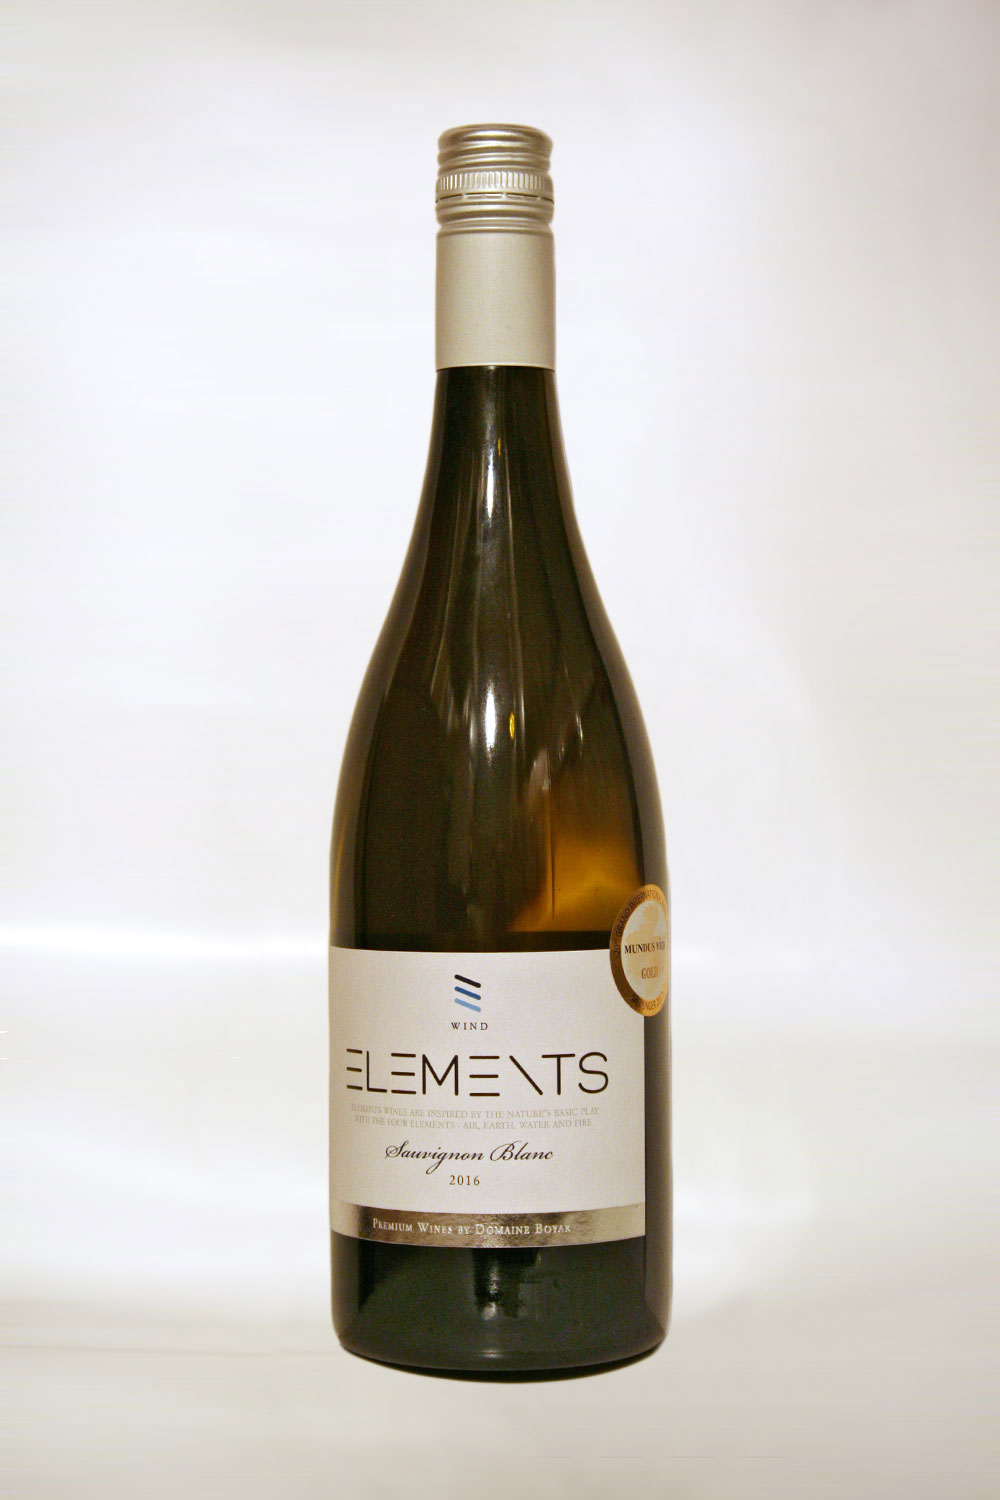 Elements Wind Sauvignon Blanc 2016